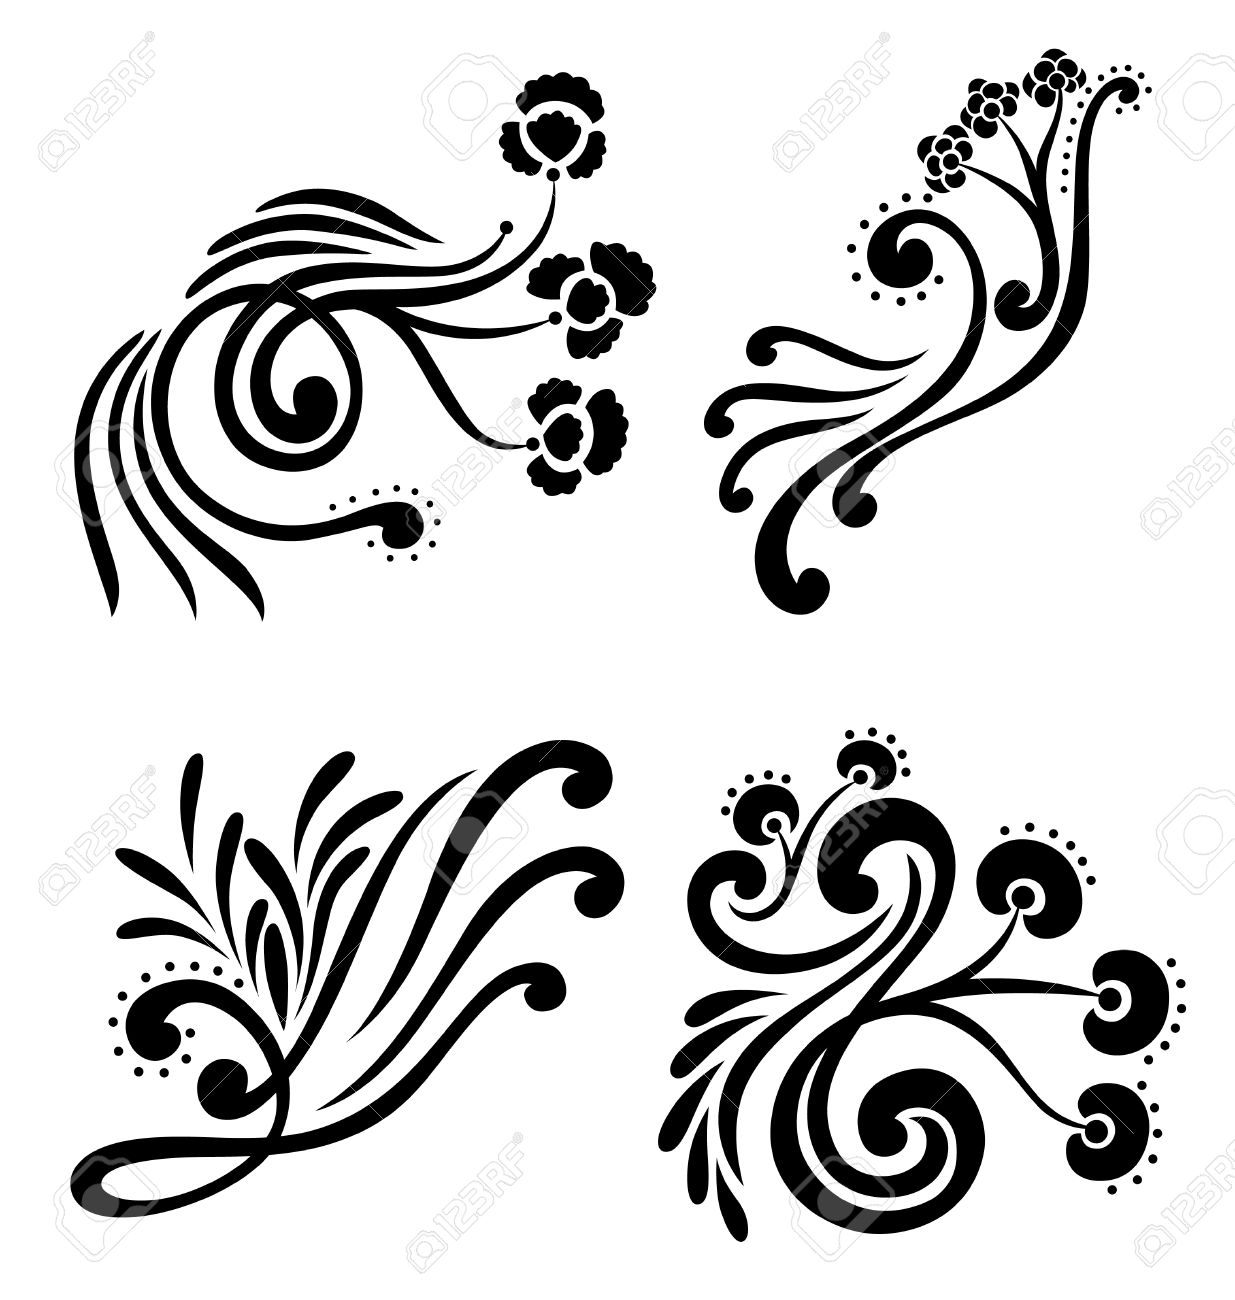 decorative design element of swirled organic shapes with flower